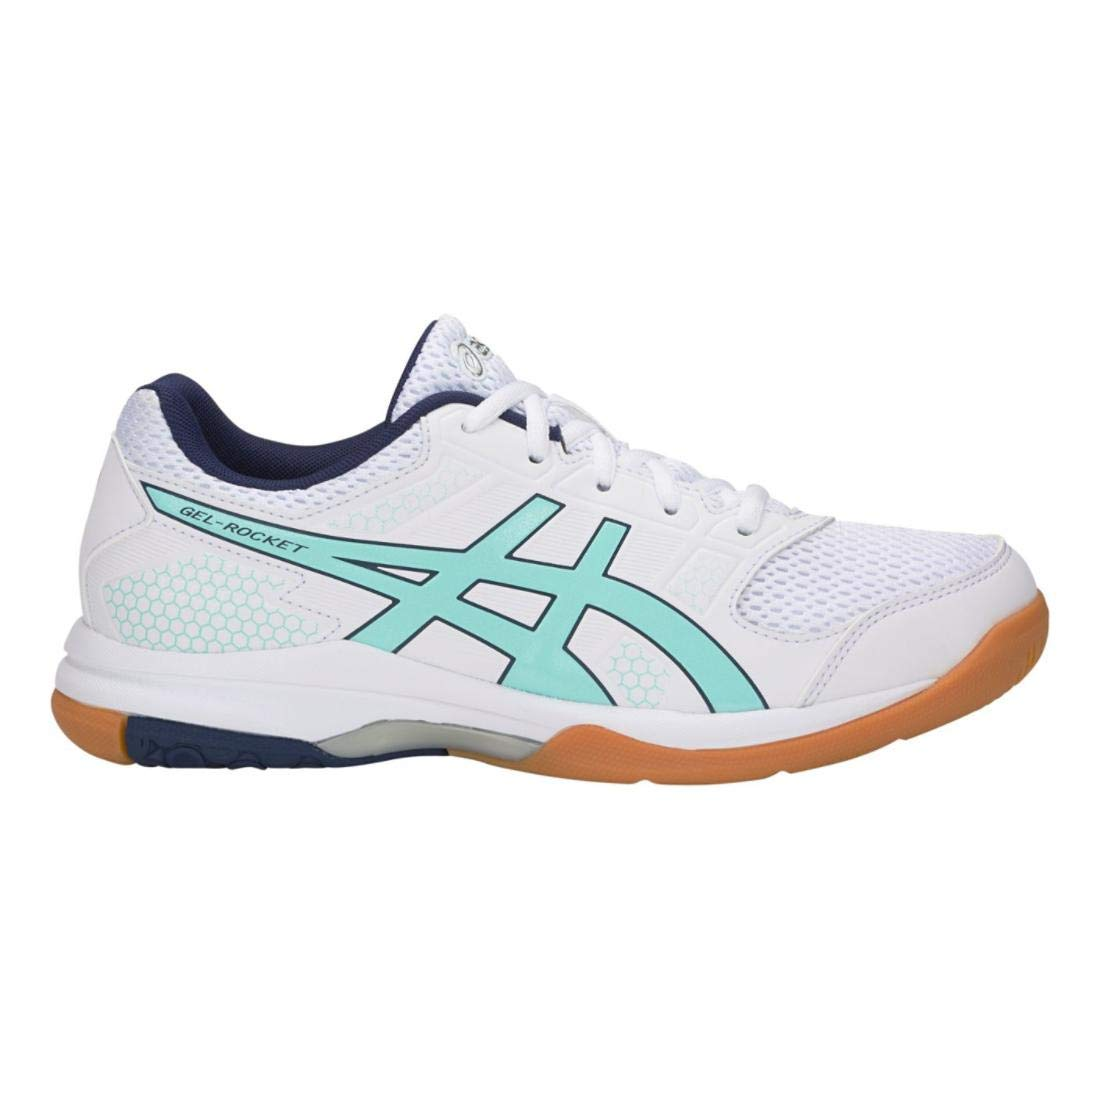 Asics Mens Gel Rocket 8 Trainers Athletic Training Shoes Sneakers Sport